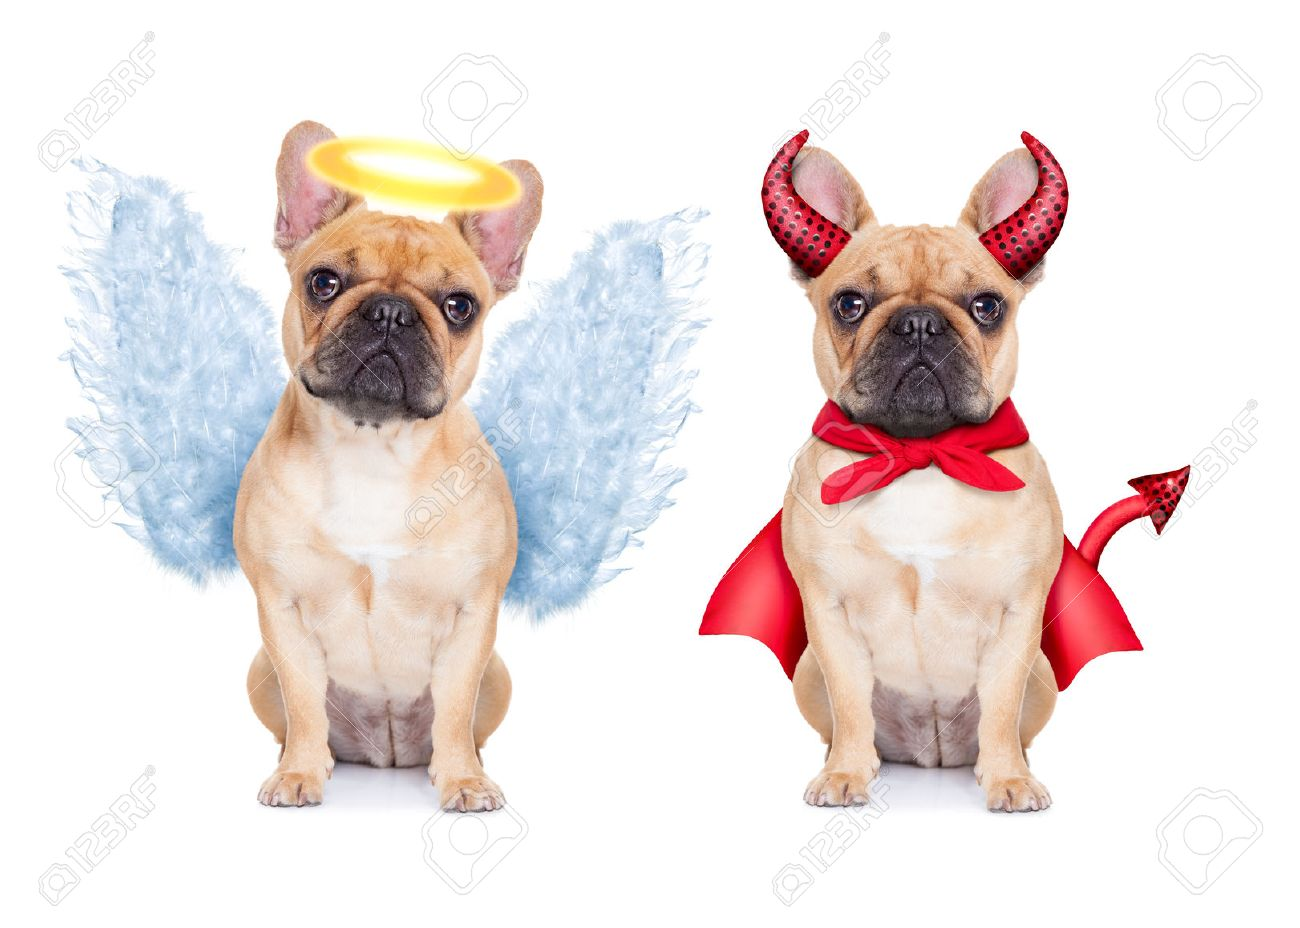 Bulldog Stock Photos Images. Royalty Free Bulldog Images And Pictures